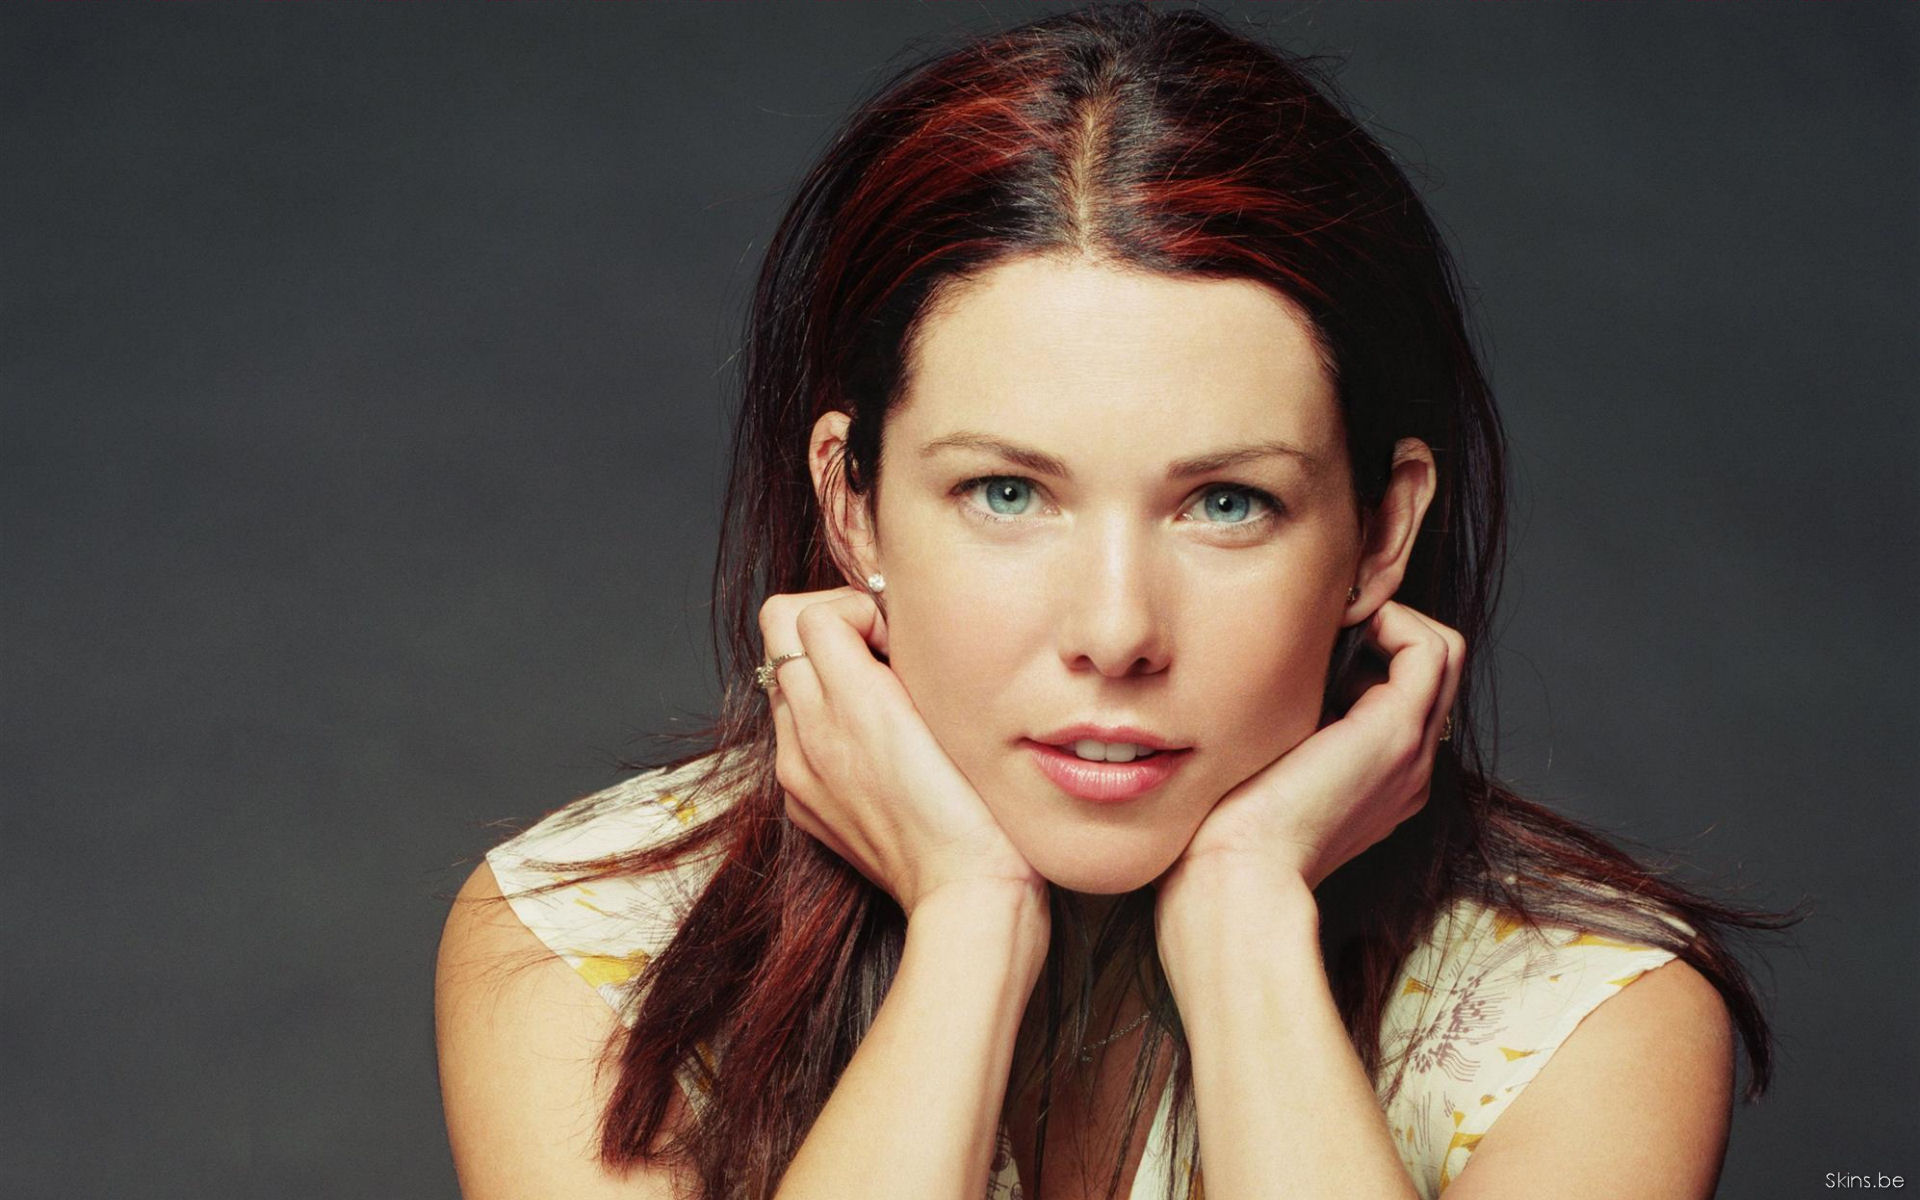 lauren graham wallpapers high resolution and quality download